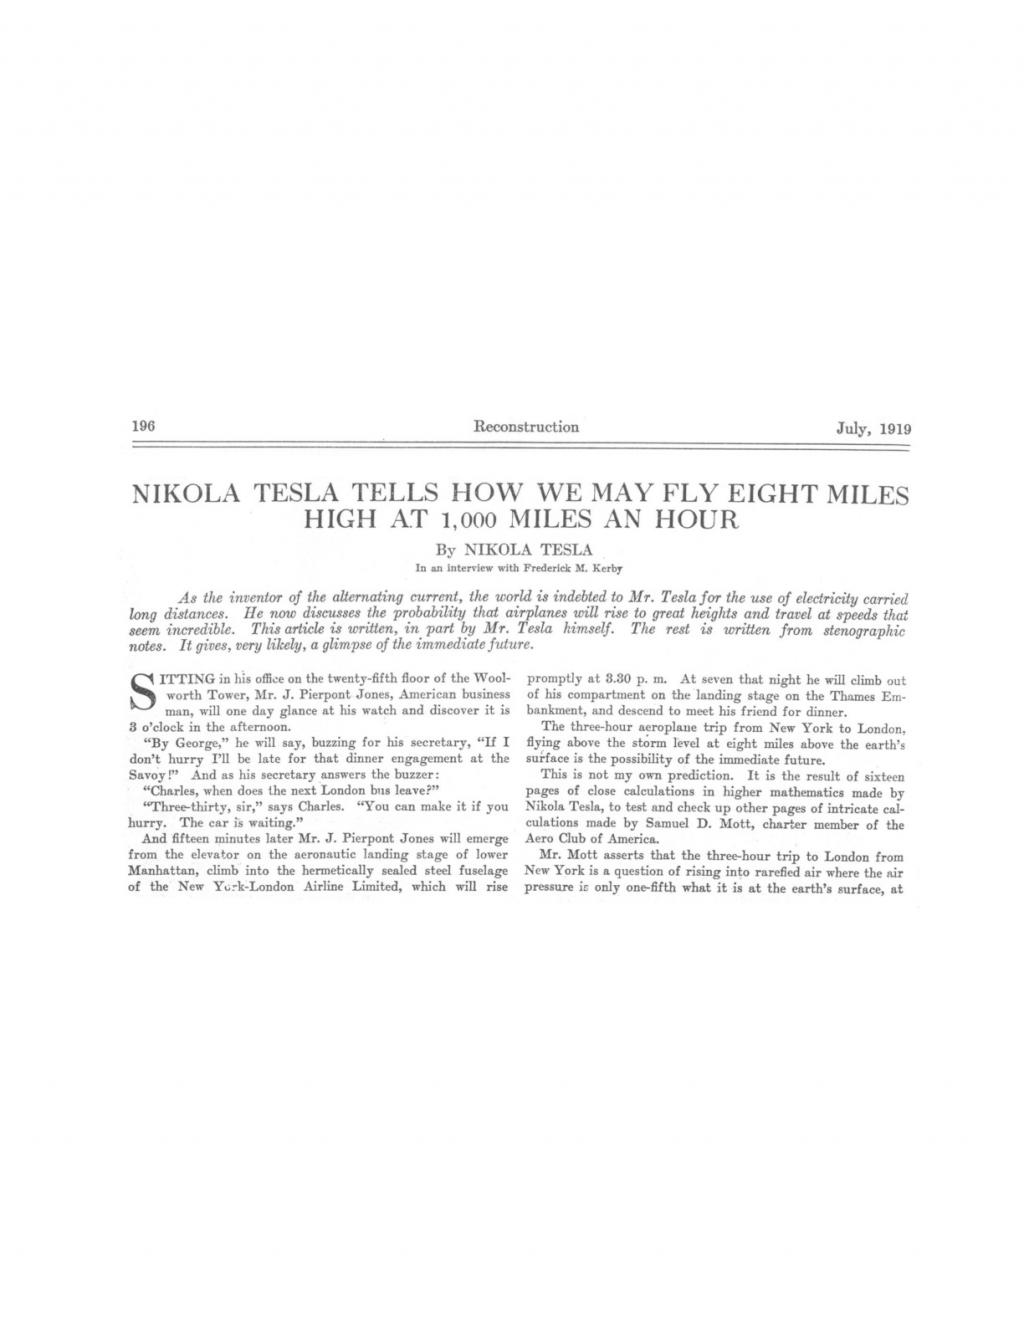 Preview of Nikola Tesla Tells How We May Fly Eight Miles High at 1,000 Miles an Hour article